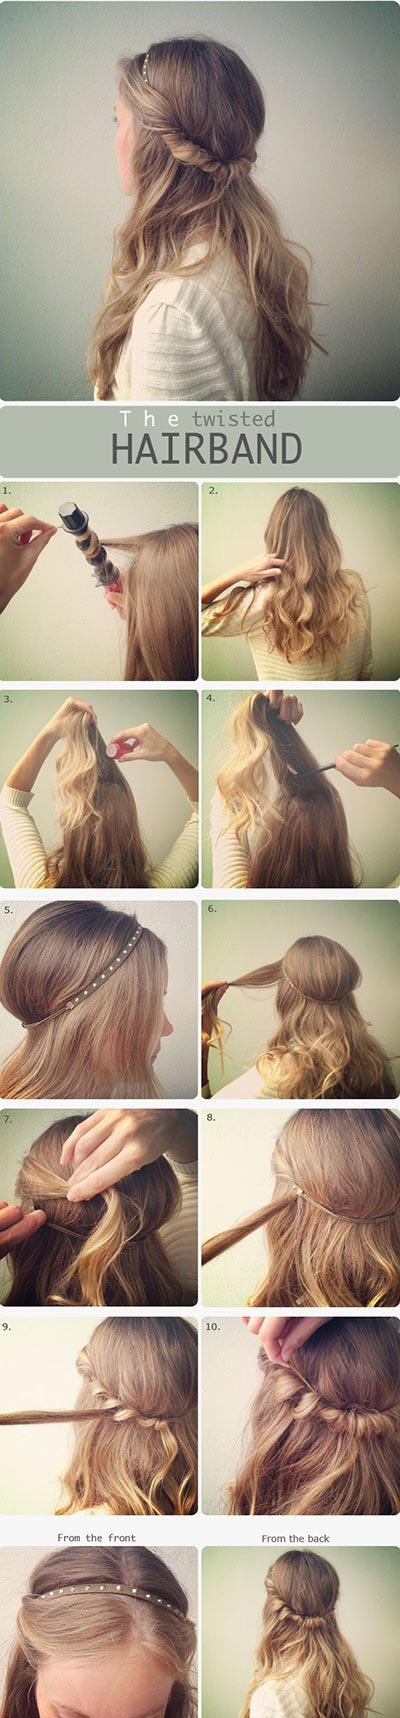 half-up-half-down-hairstyles-15